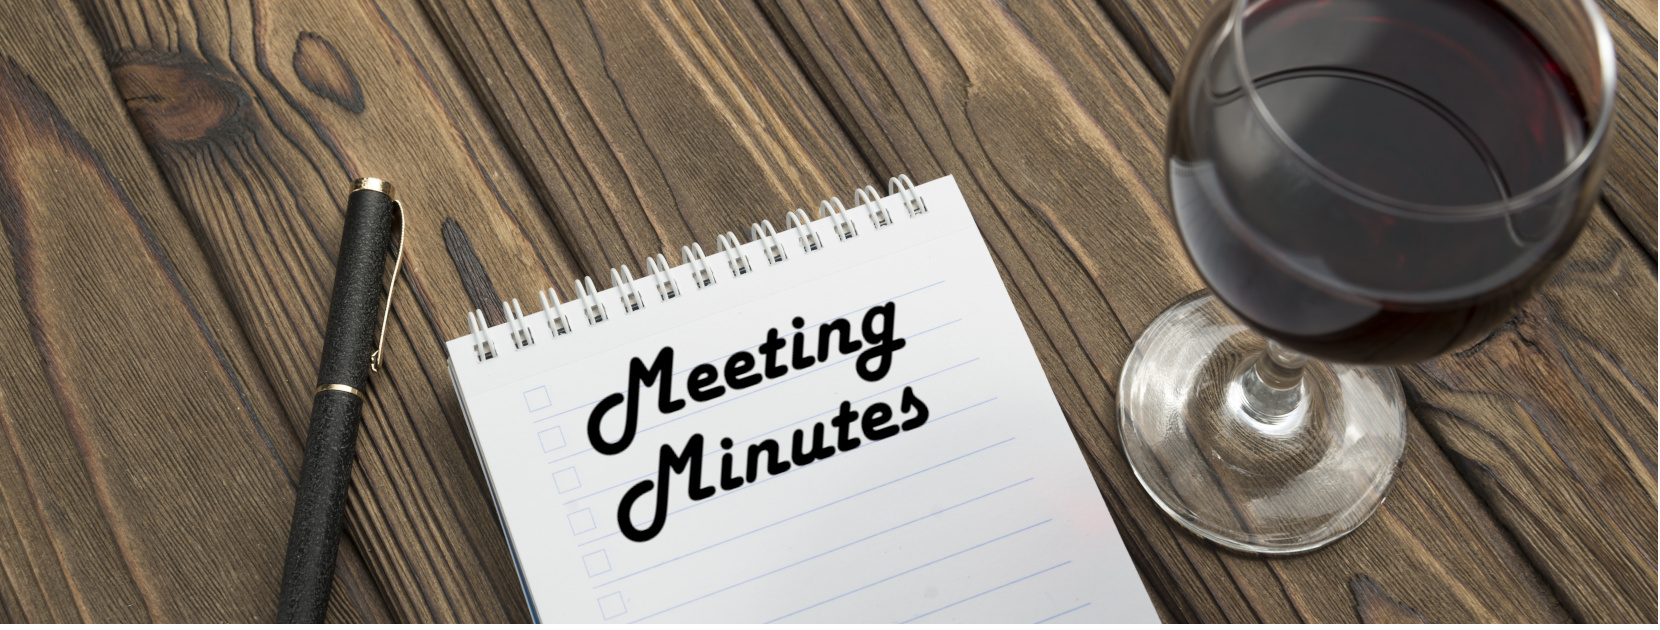 Meeting Minutes Banner